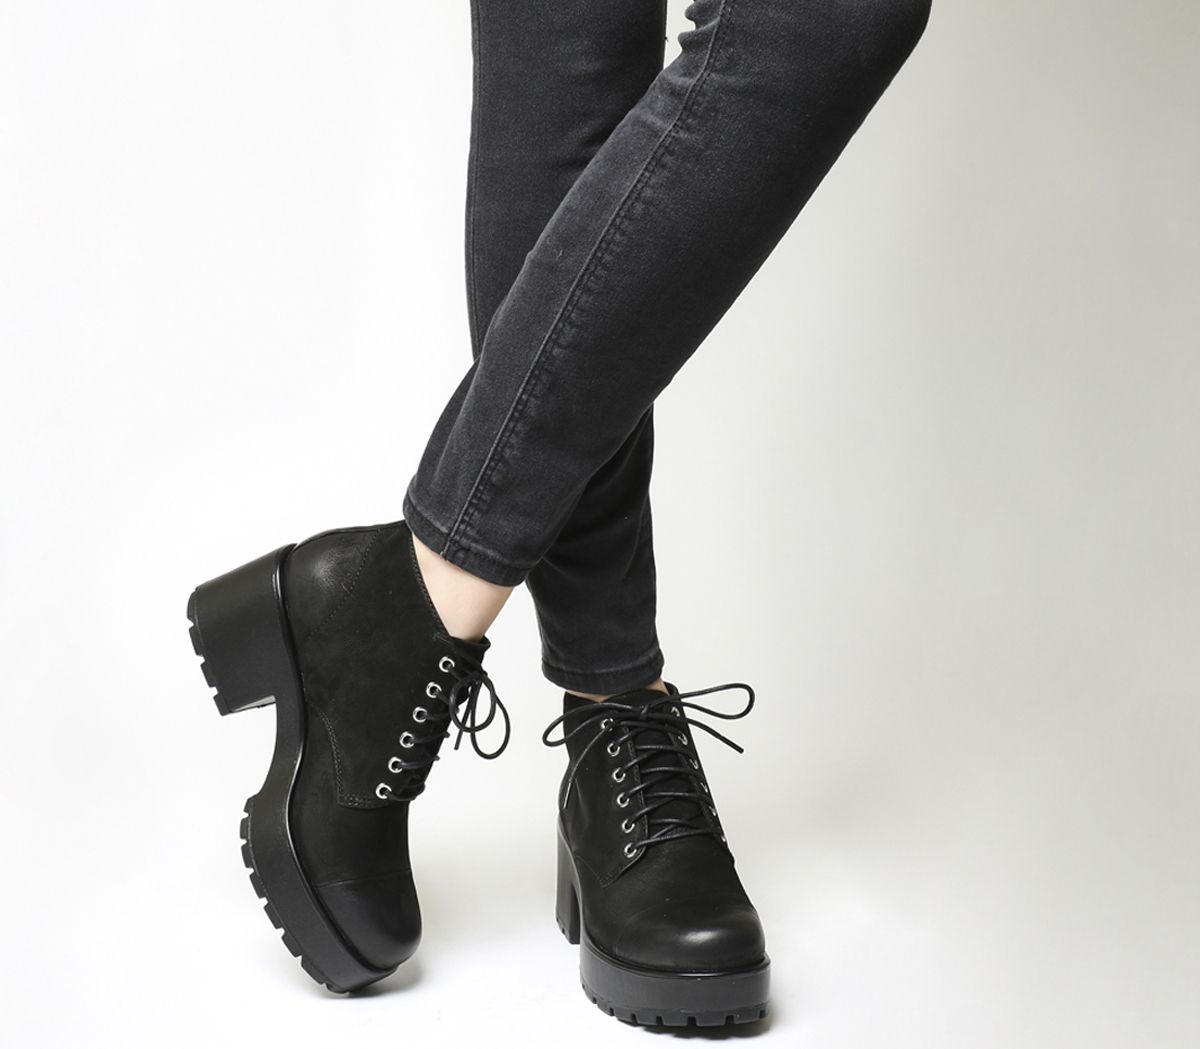 17710a758db Vagabond Dioon Lace Up Boots Black Nubuck - Ankle Boots